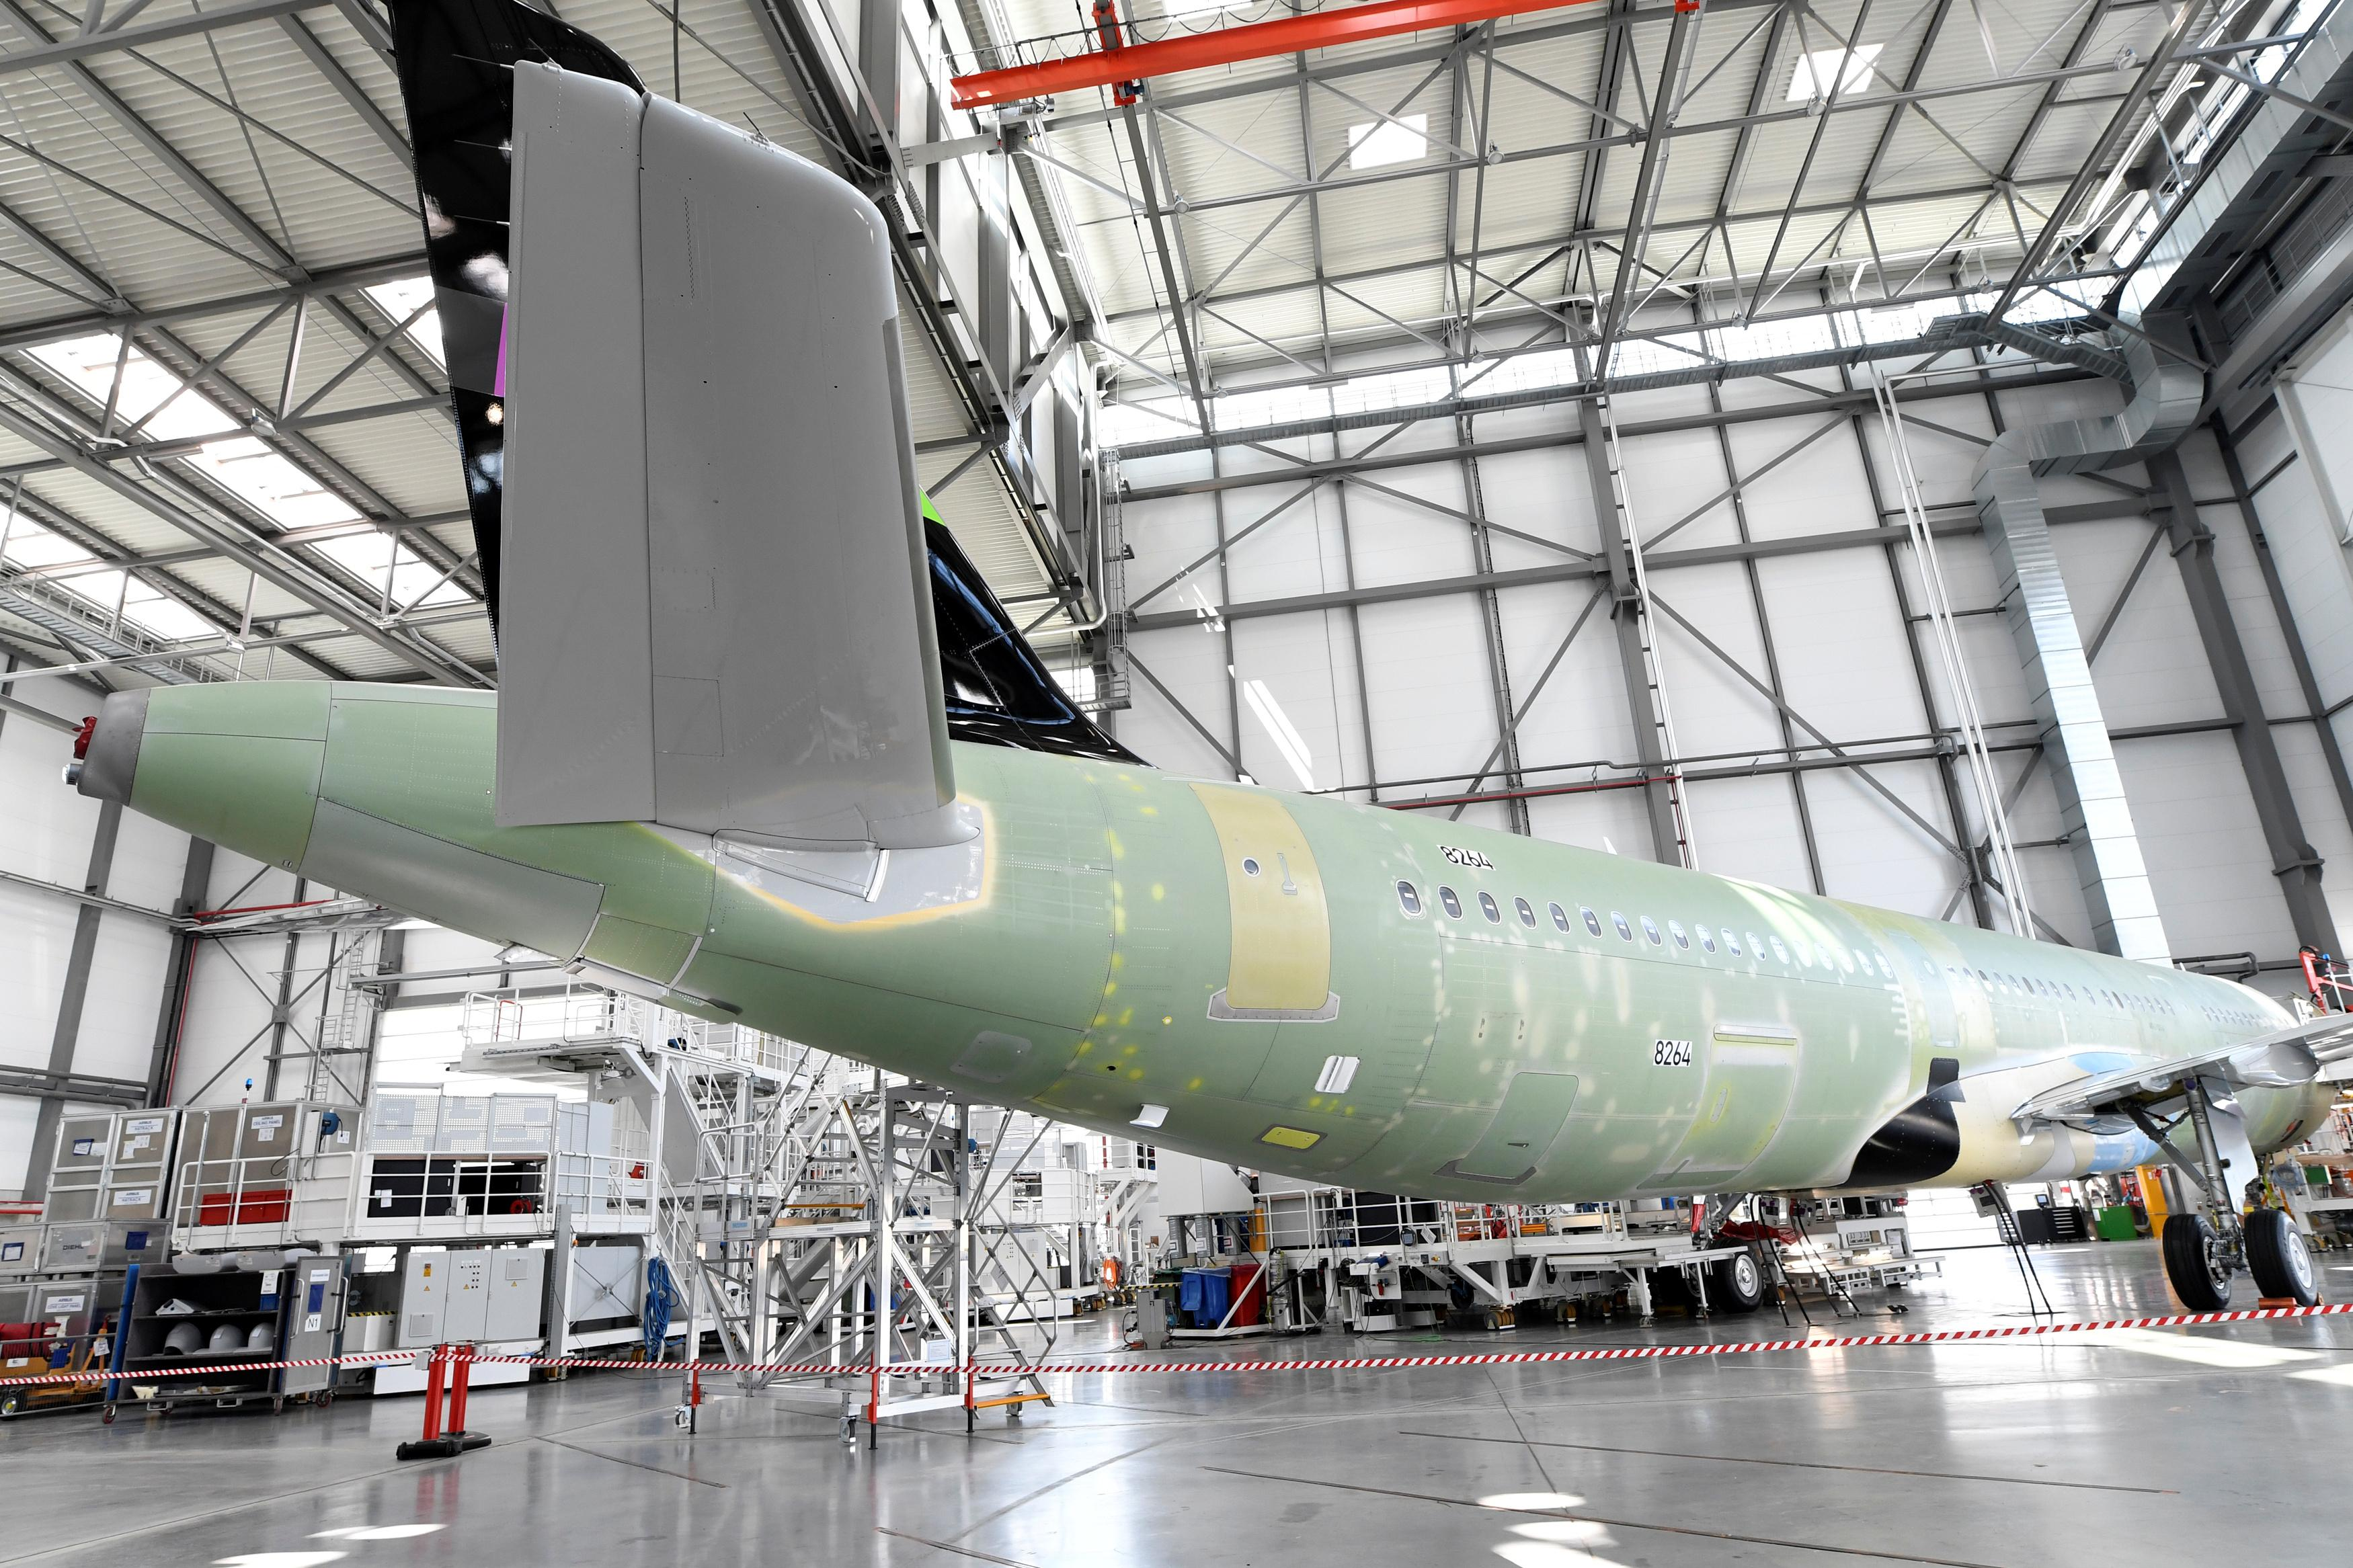 Kuwait's Jazeera unhappy with Airbus delays, no plans for aircraft...